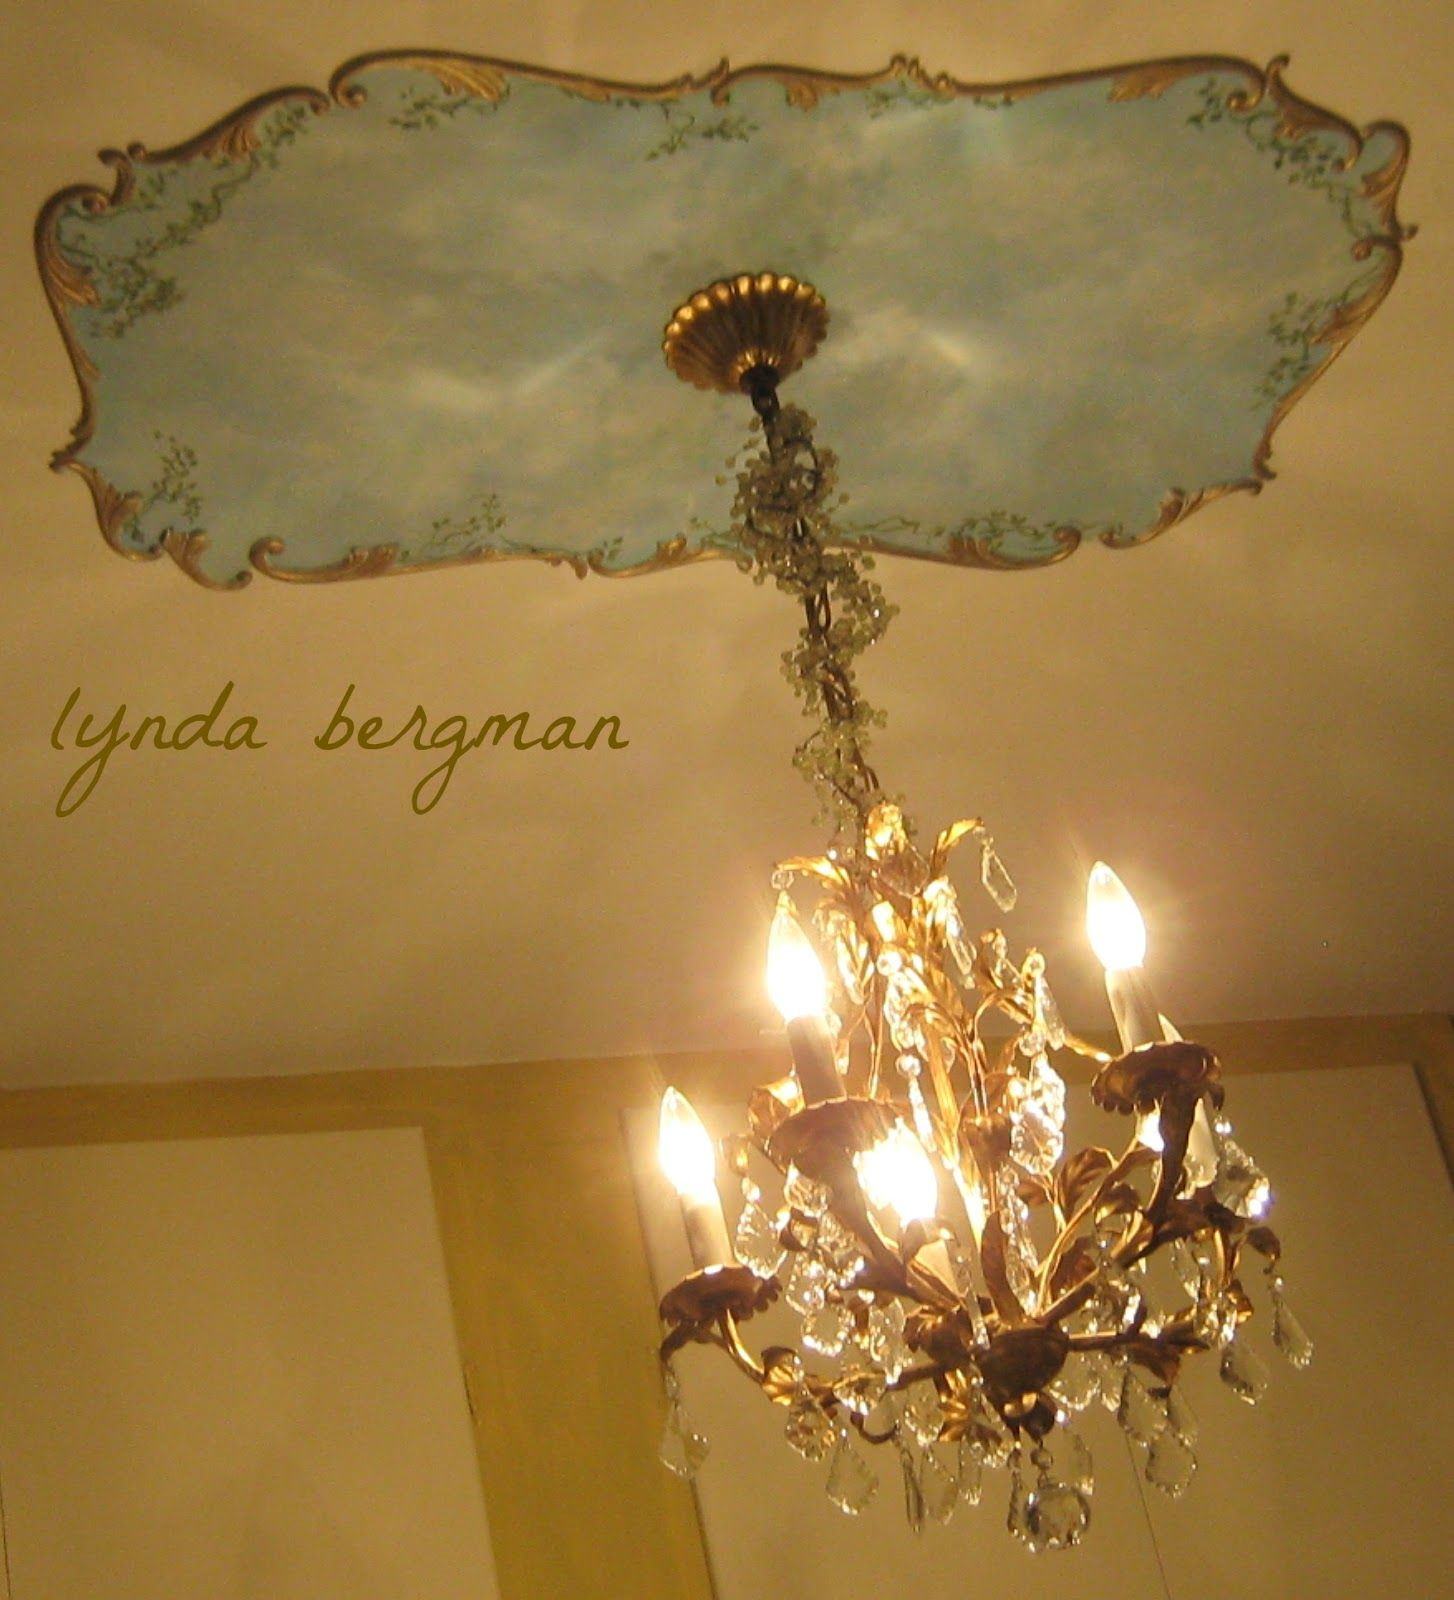 Lynda bergman decorative artisan designing painting a sky ceiling from time to time i paint store bought ceiling medallions for my clients they go at the base of a chandelier or fan and always look so arubaitofo Choice Image